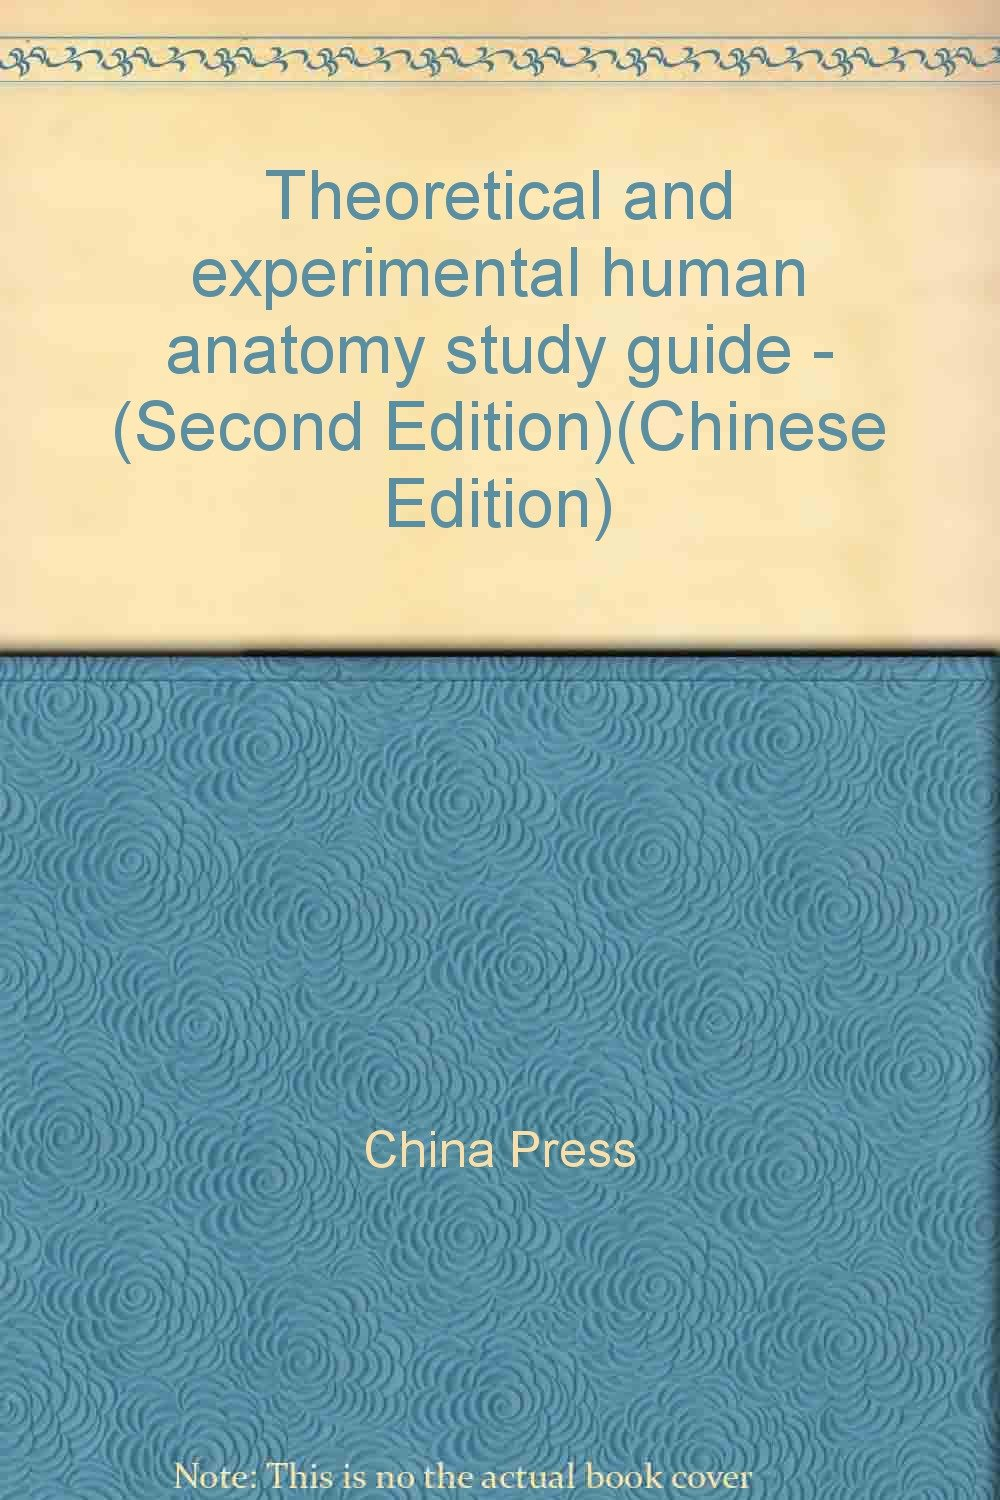 Theoretical and experimental human anatomy study guide - (Second Edition)( Chinese Edition): China Press: 9787030286109: Amazon.com: Books